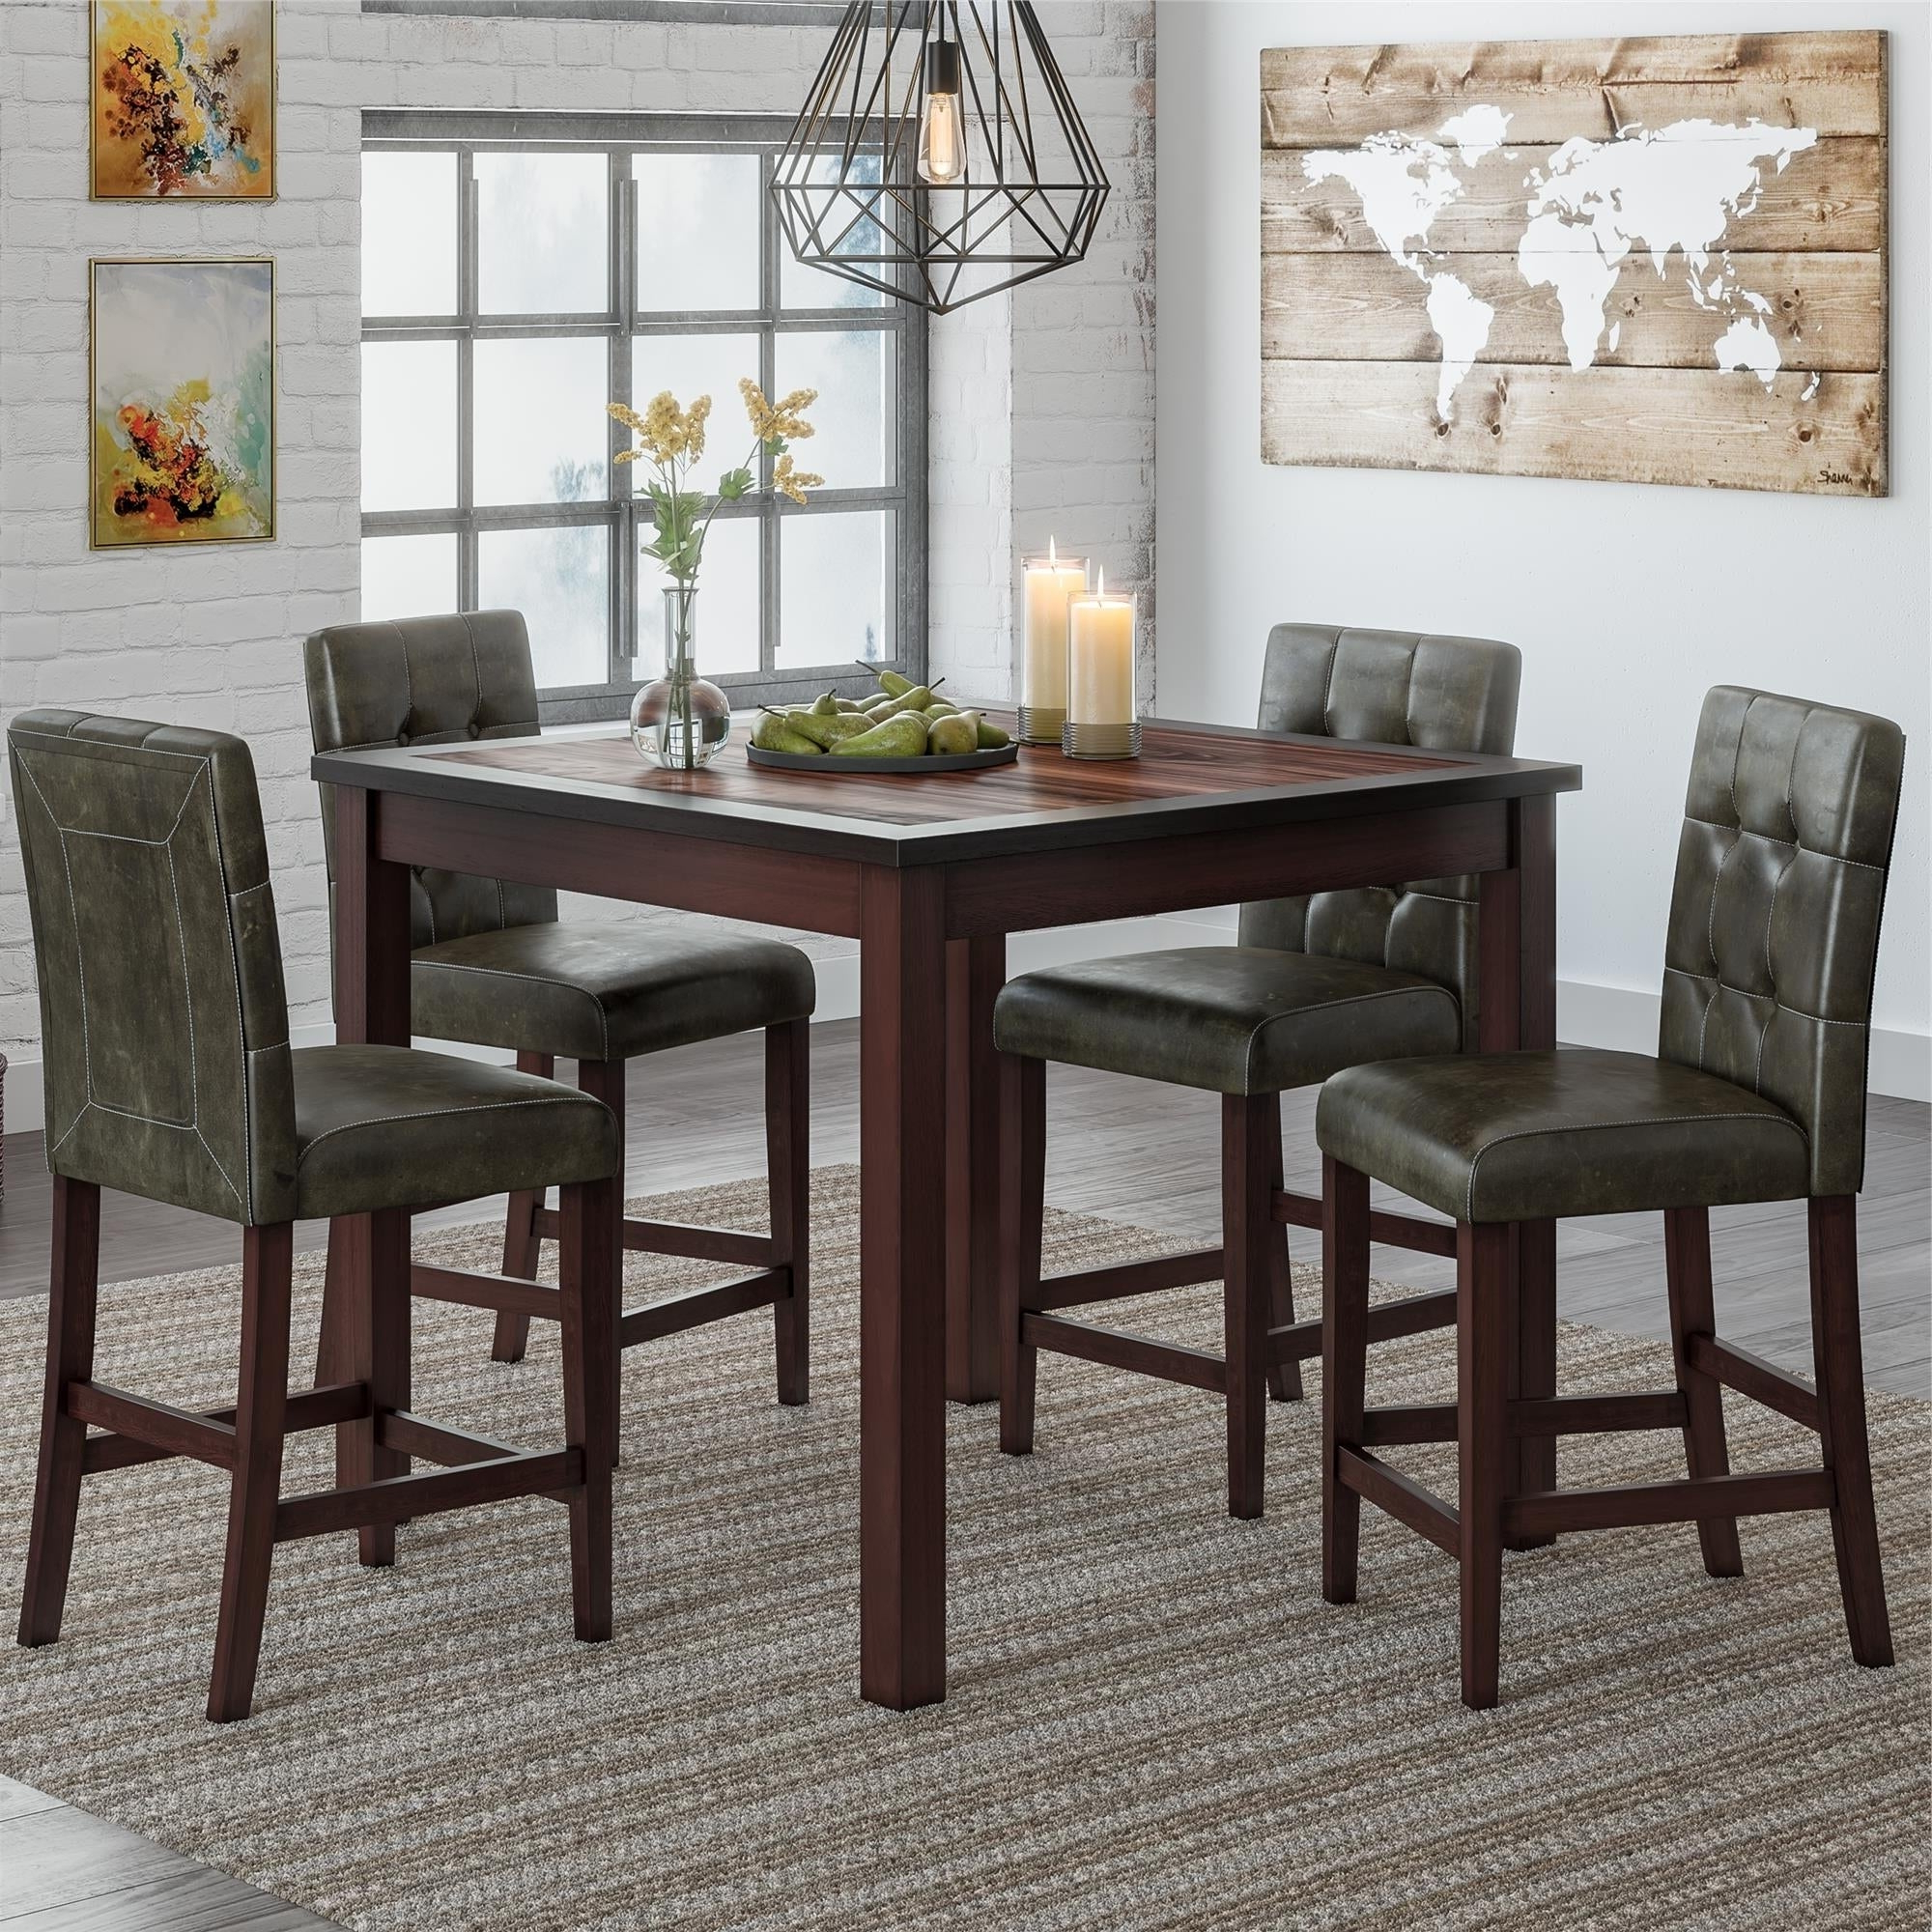 Bettencourt 3 Piece Counter Height Dining Sets Within Most Up To Date Shop Gracewood Hollow Betancourt Espresso 5 Piece Counter Height (View 13 of 25)